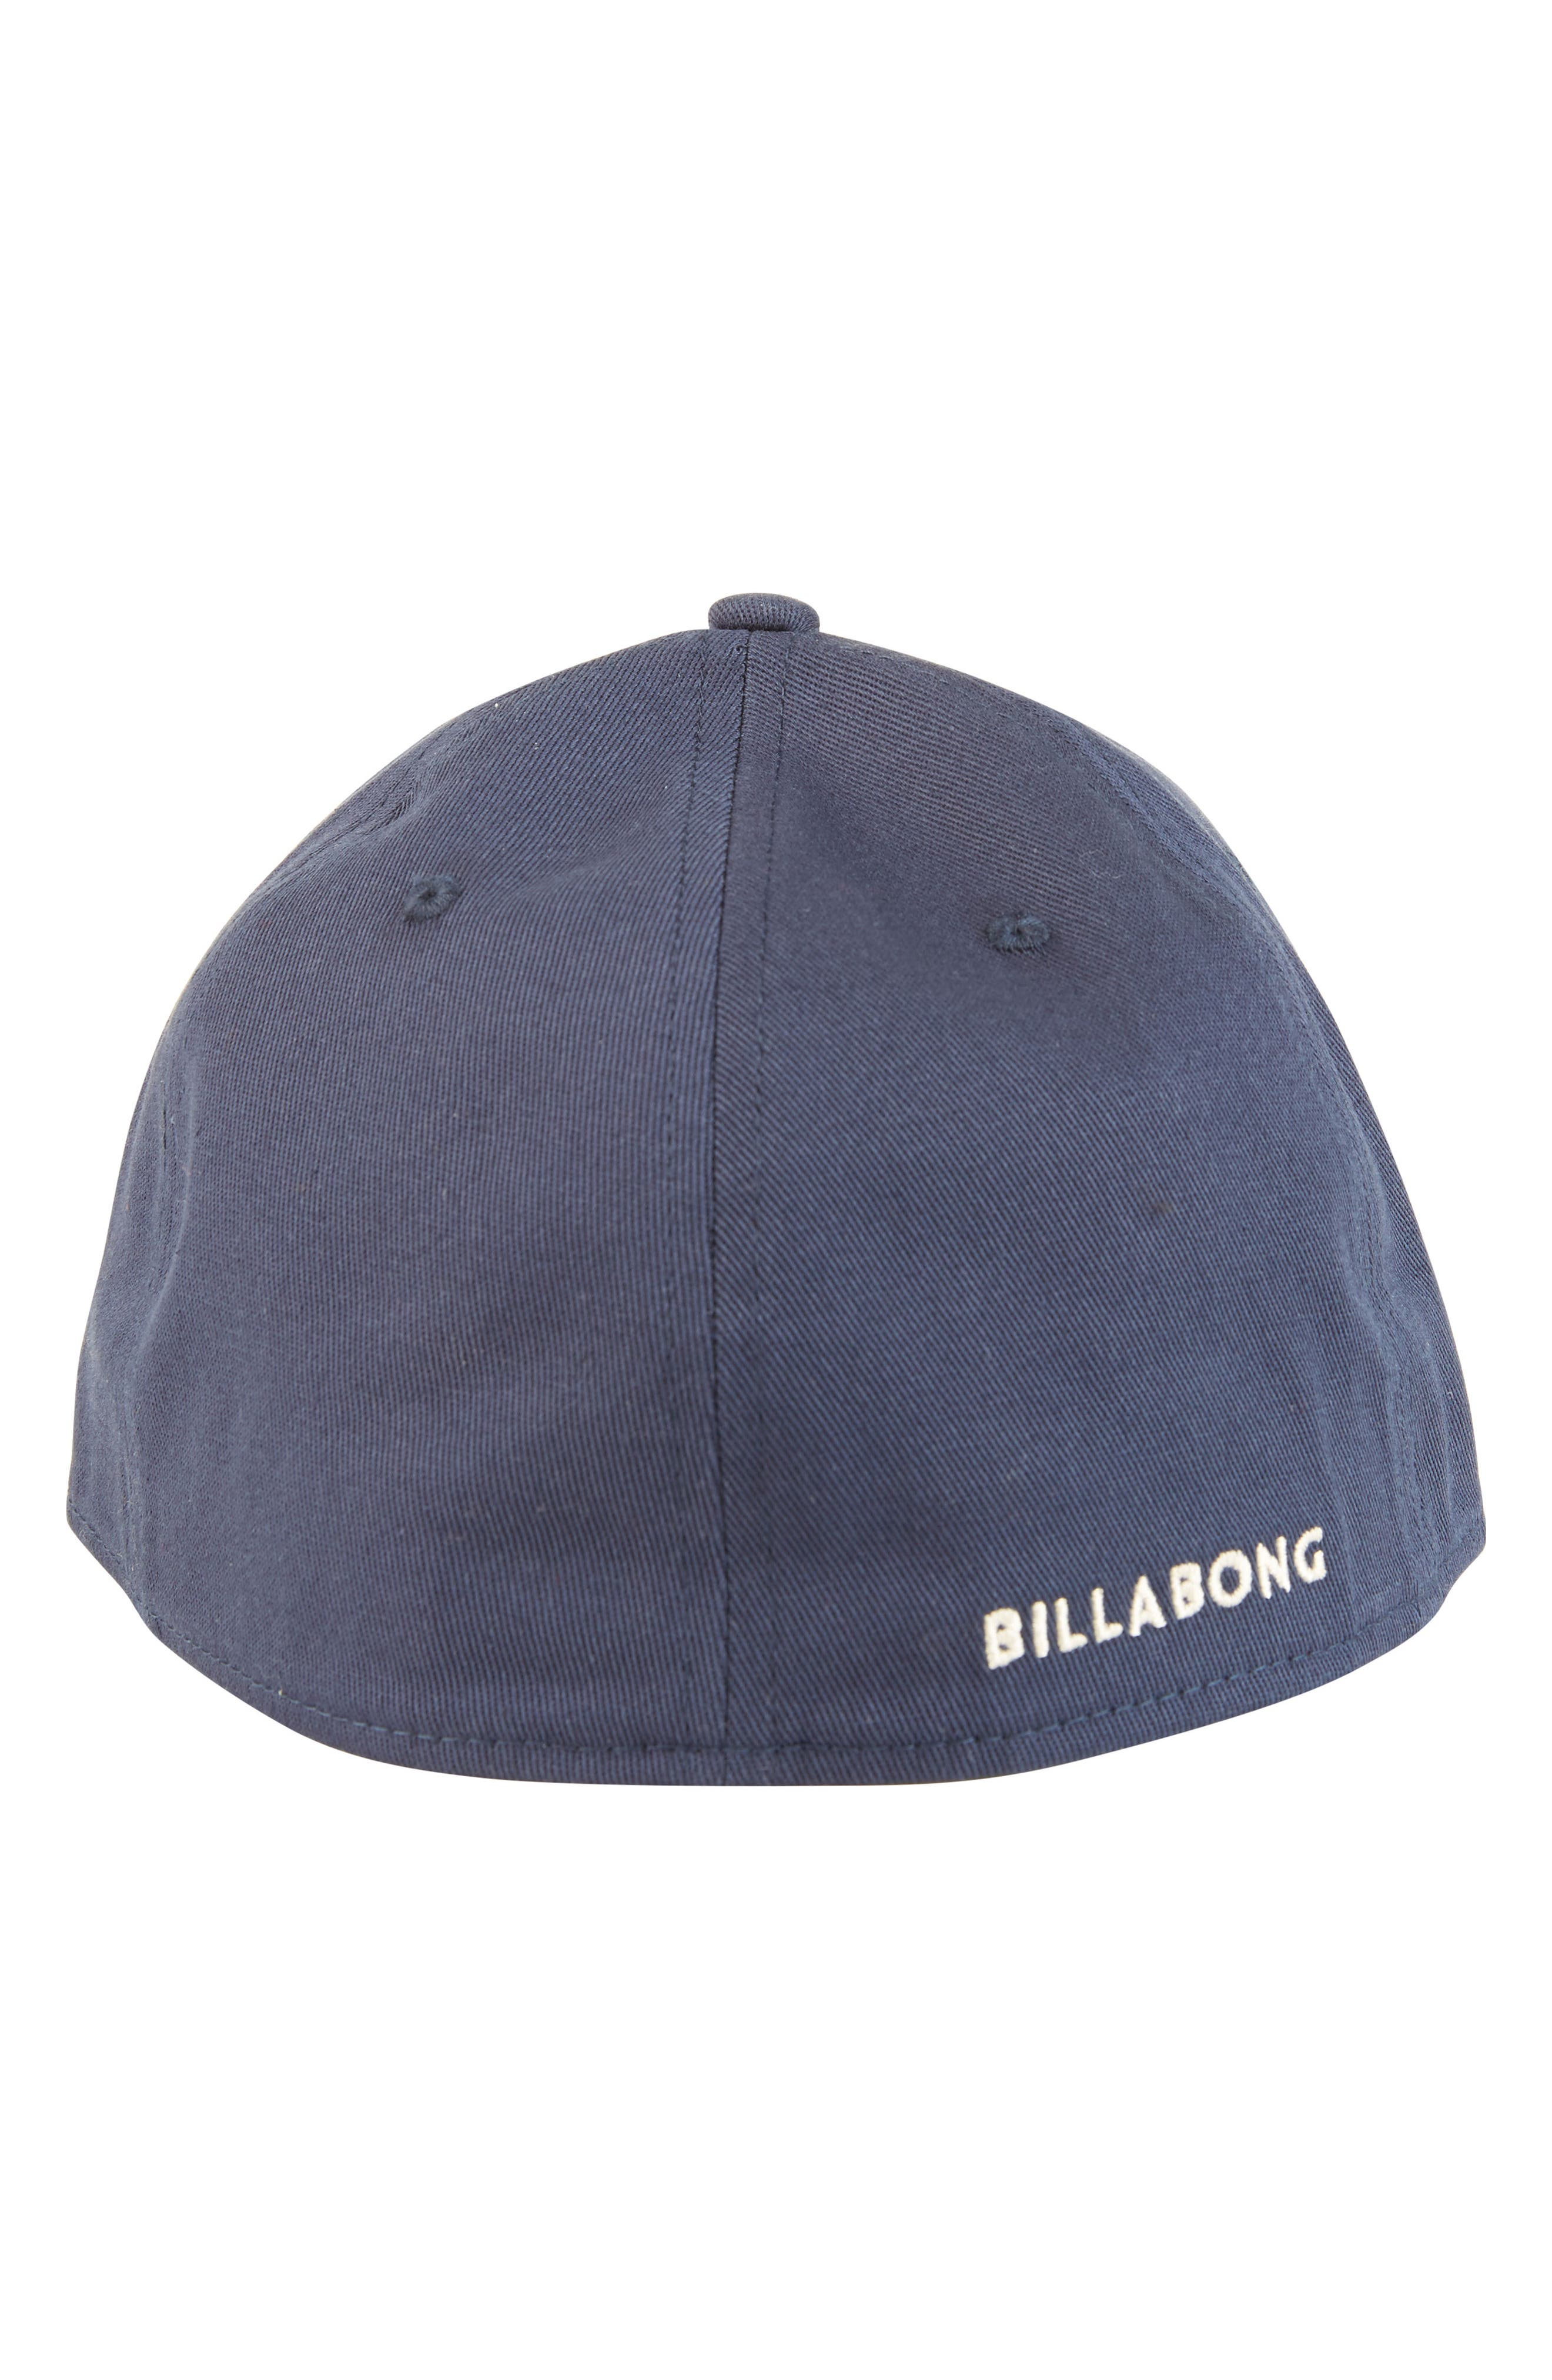 All Day Stretch Baseball Cap,                             Alternate thumbnail 4, color,                             Navy